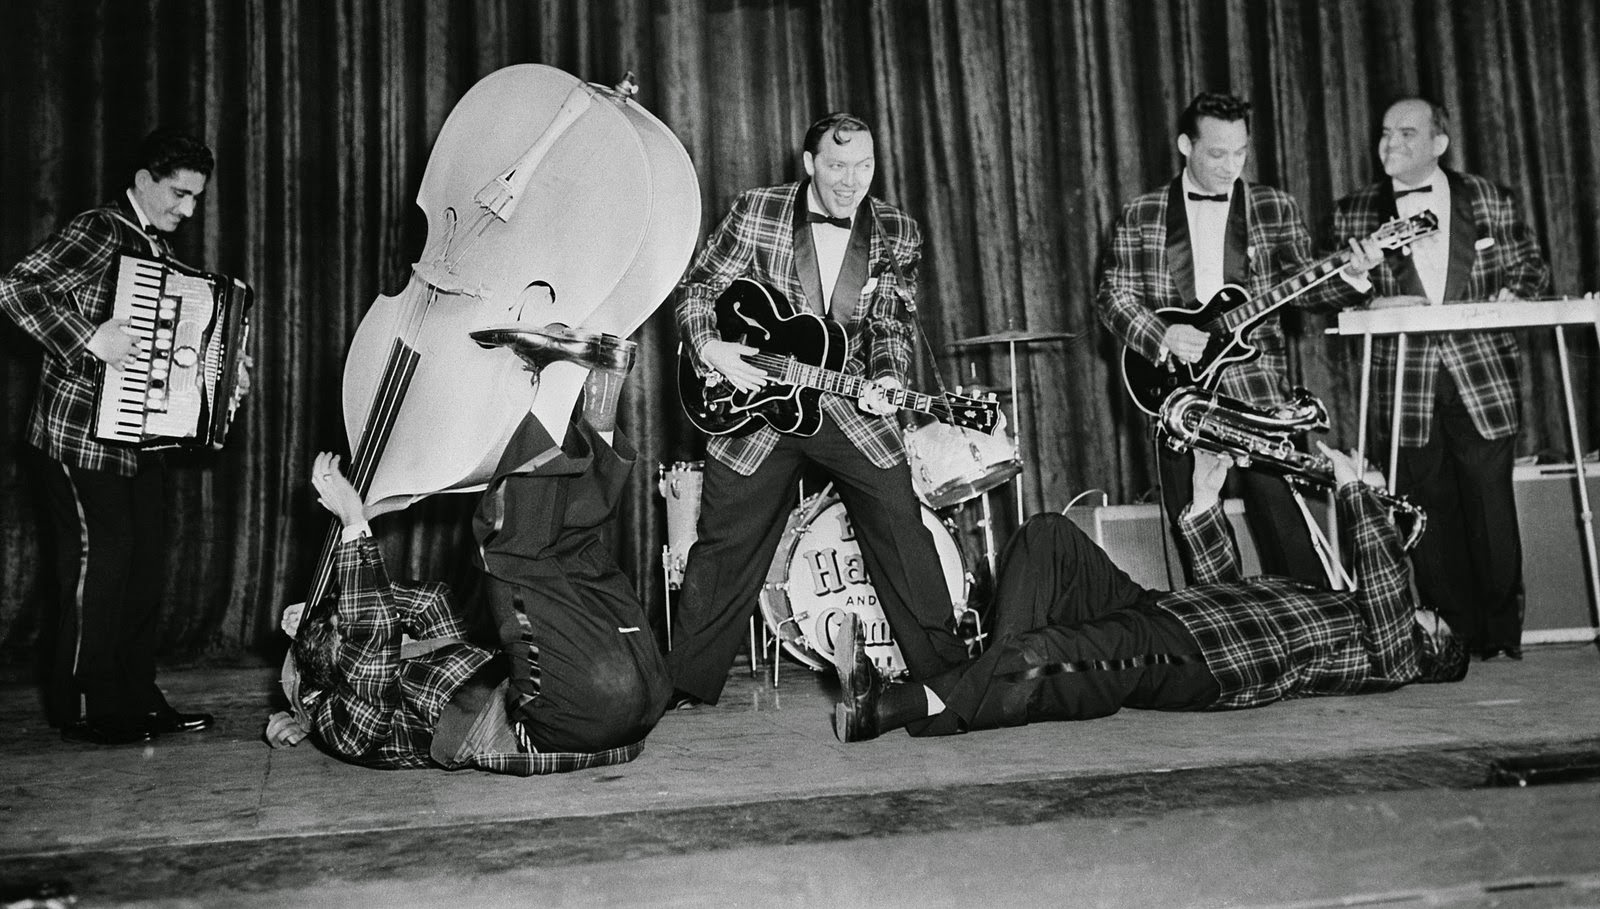 http://www.rhombusmag.com/2011/05/04/the-history-of-rock-n-roll-in-25-songs-bill-haley-and-the-comets-rock-around-the-clock/